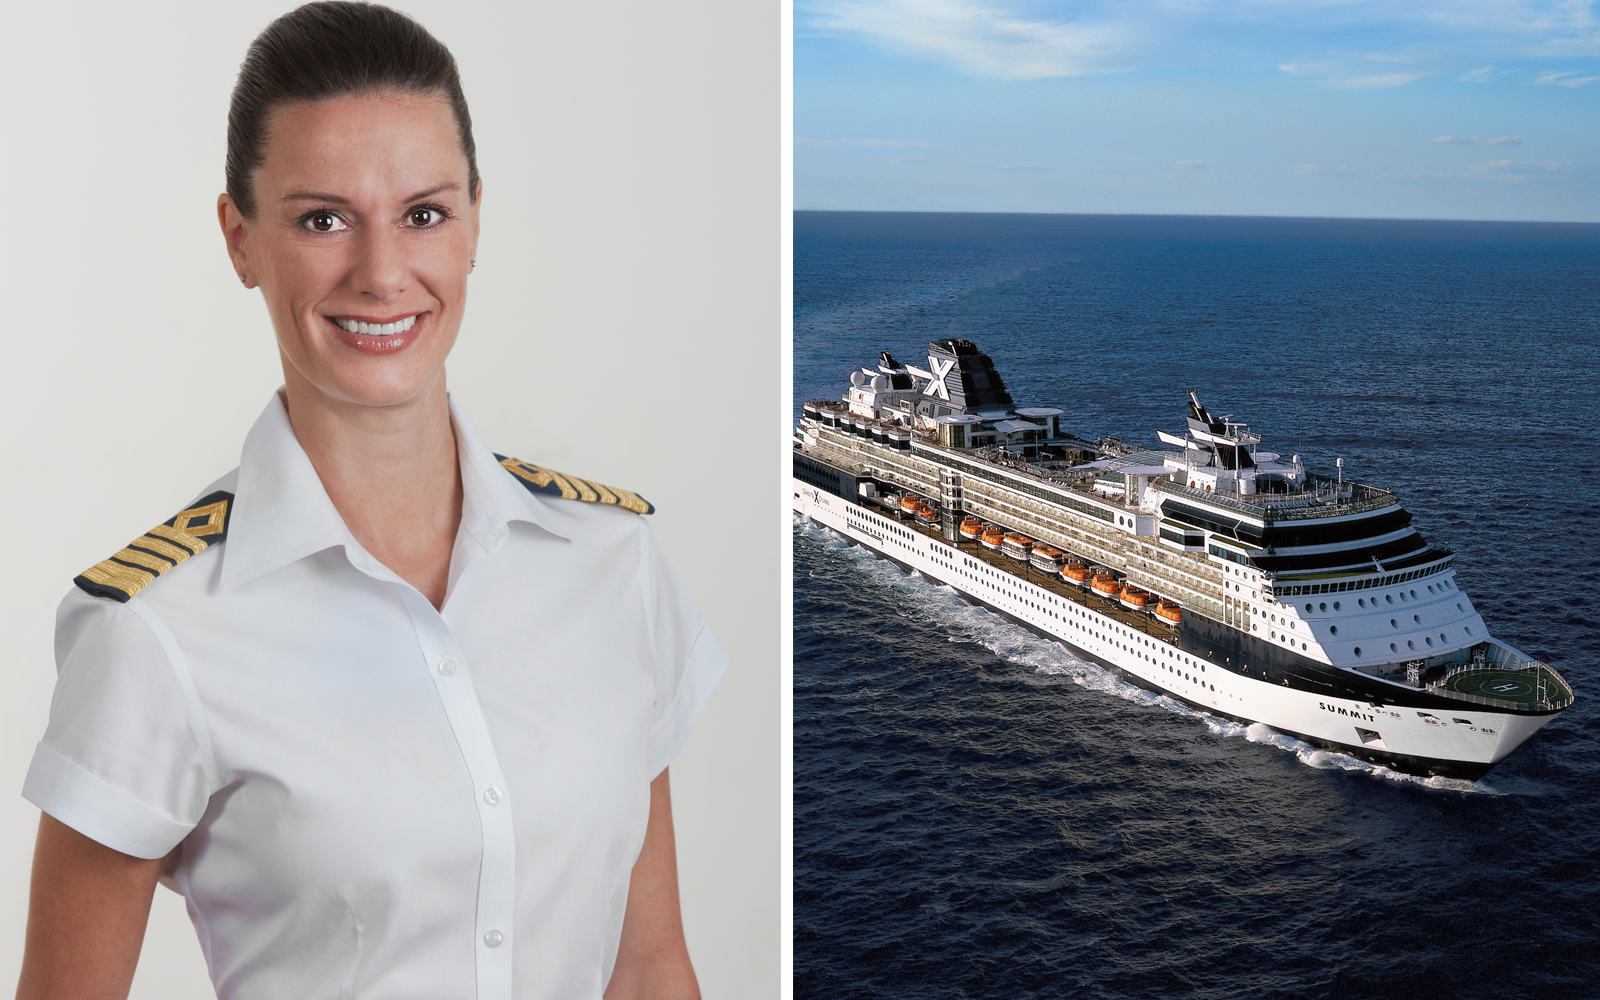 Meet the First American Female Captain: Celebrity Cruises' Kate McCue